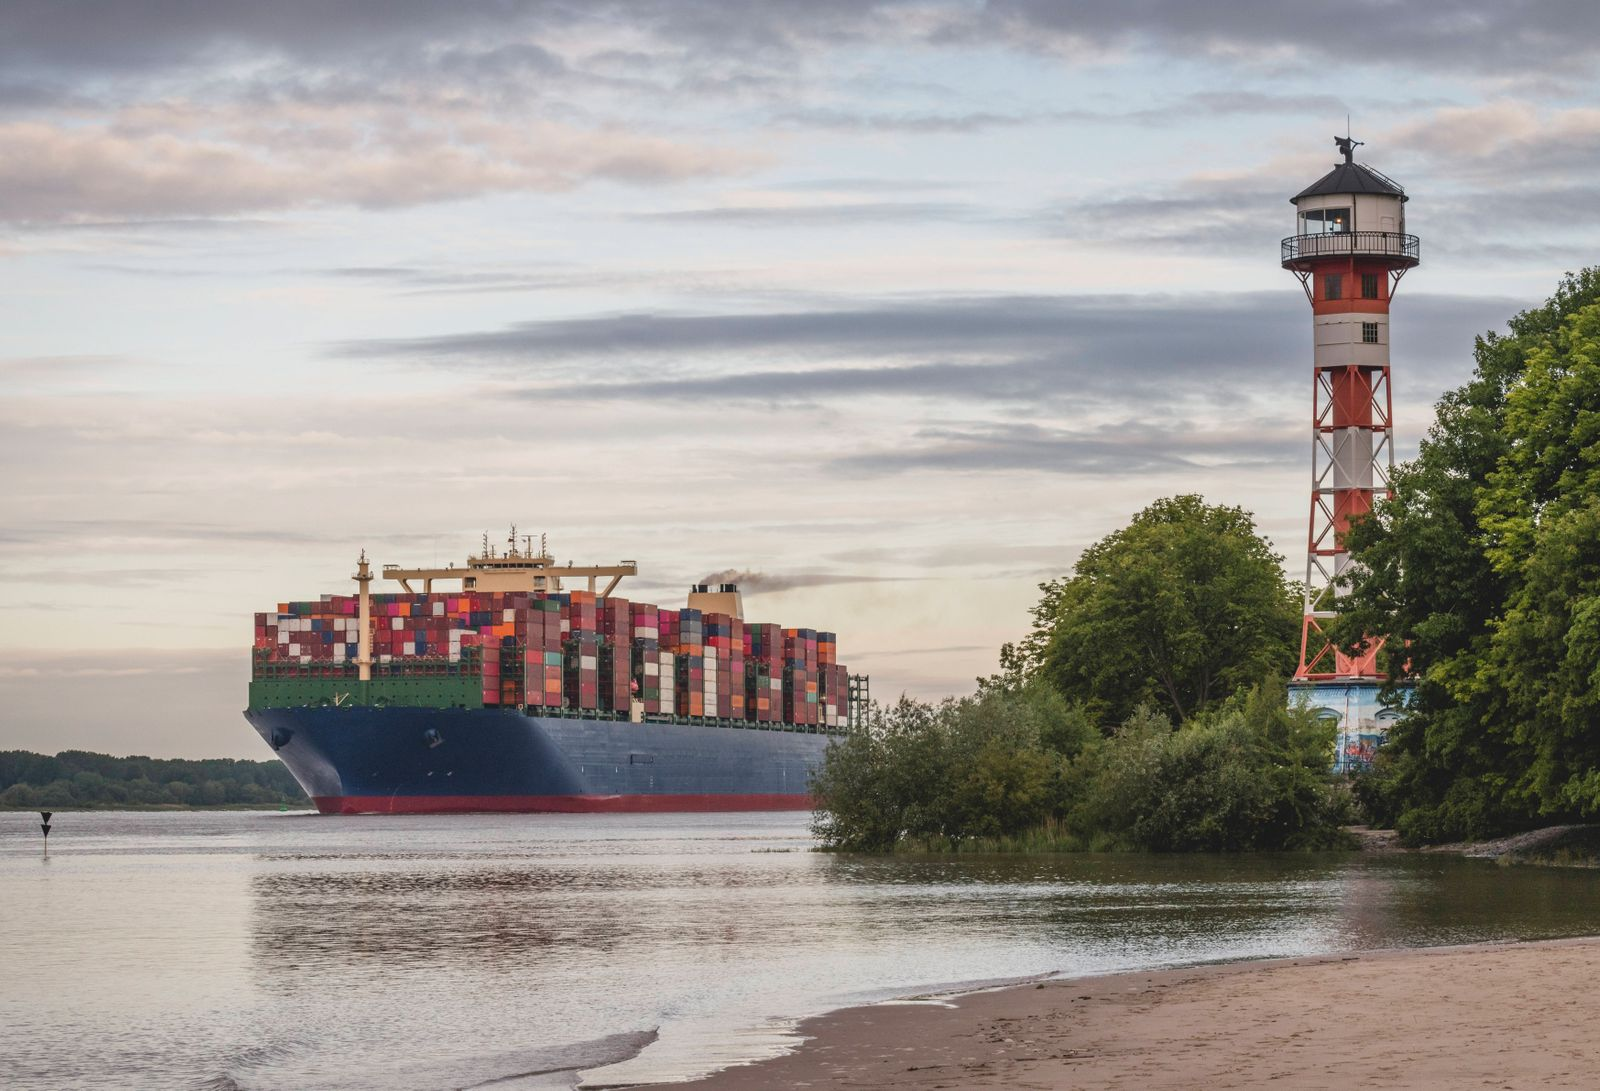 Germany, Hamburg, Container ship on Elbe river and Wittenbergen lighthouse at sunset KEBF01672